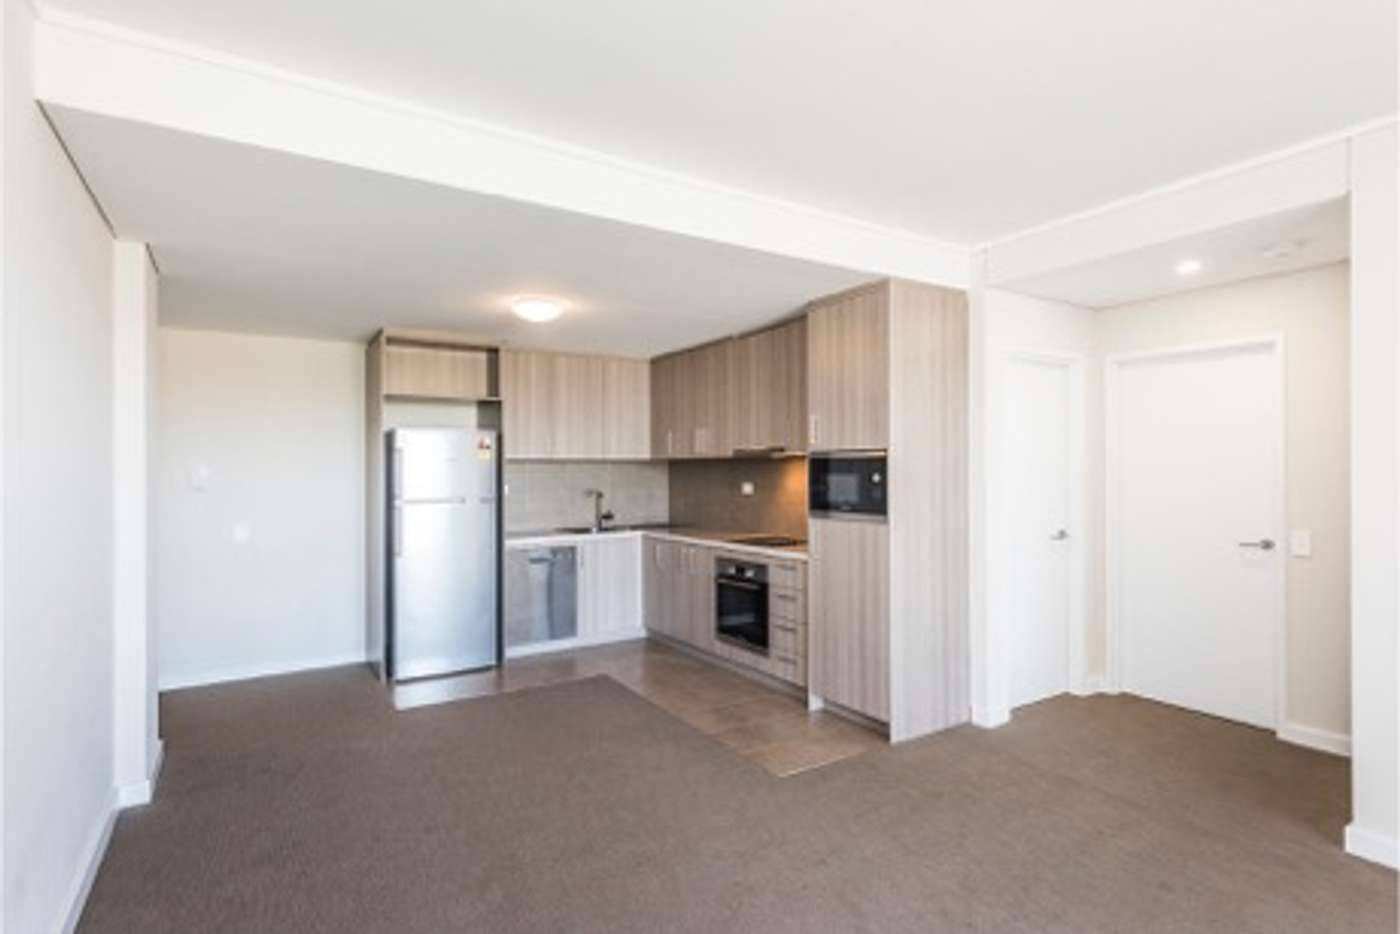 Sixth view of Homely apartment listing, 310/18 Cecil Avenue, Cannington WA 6107